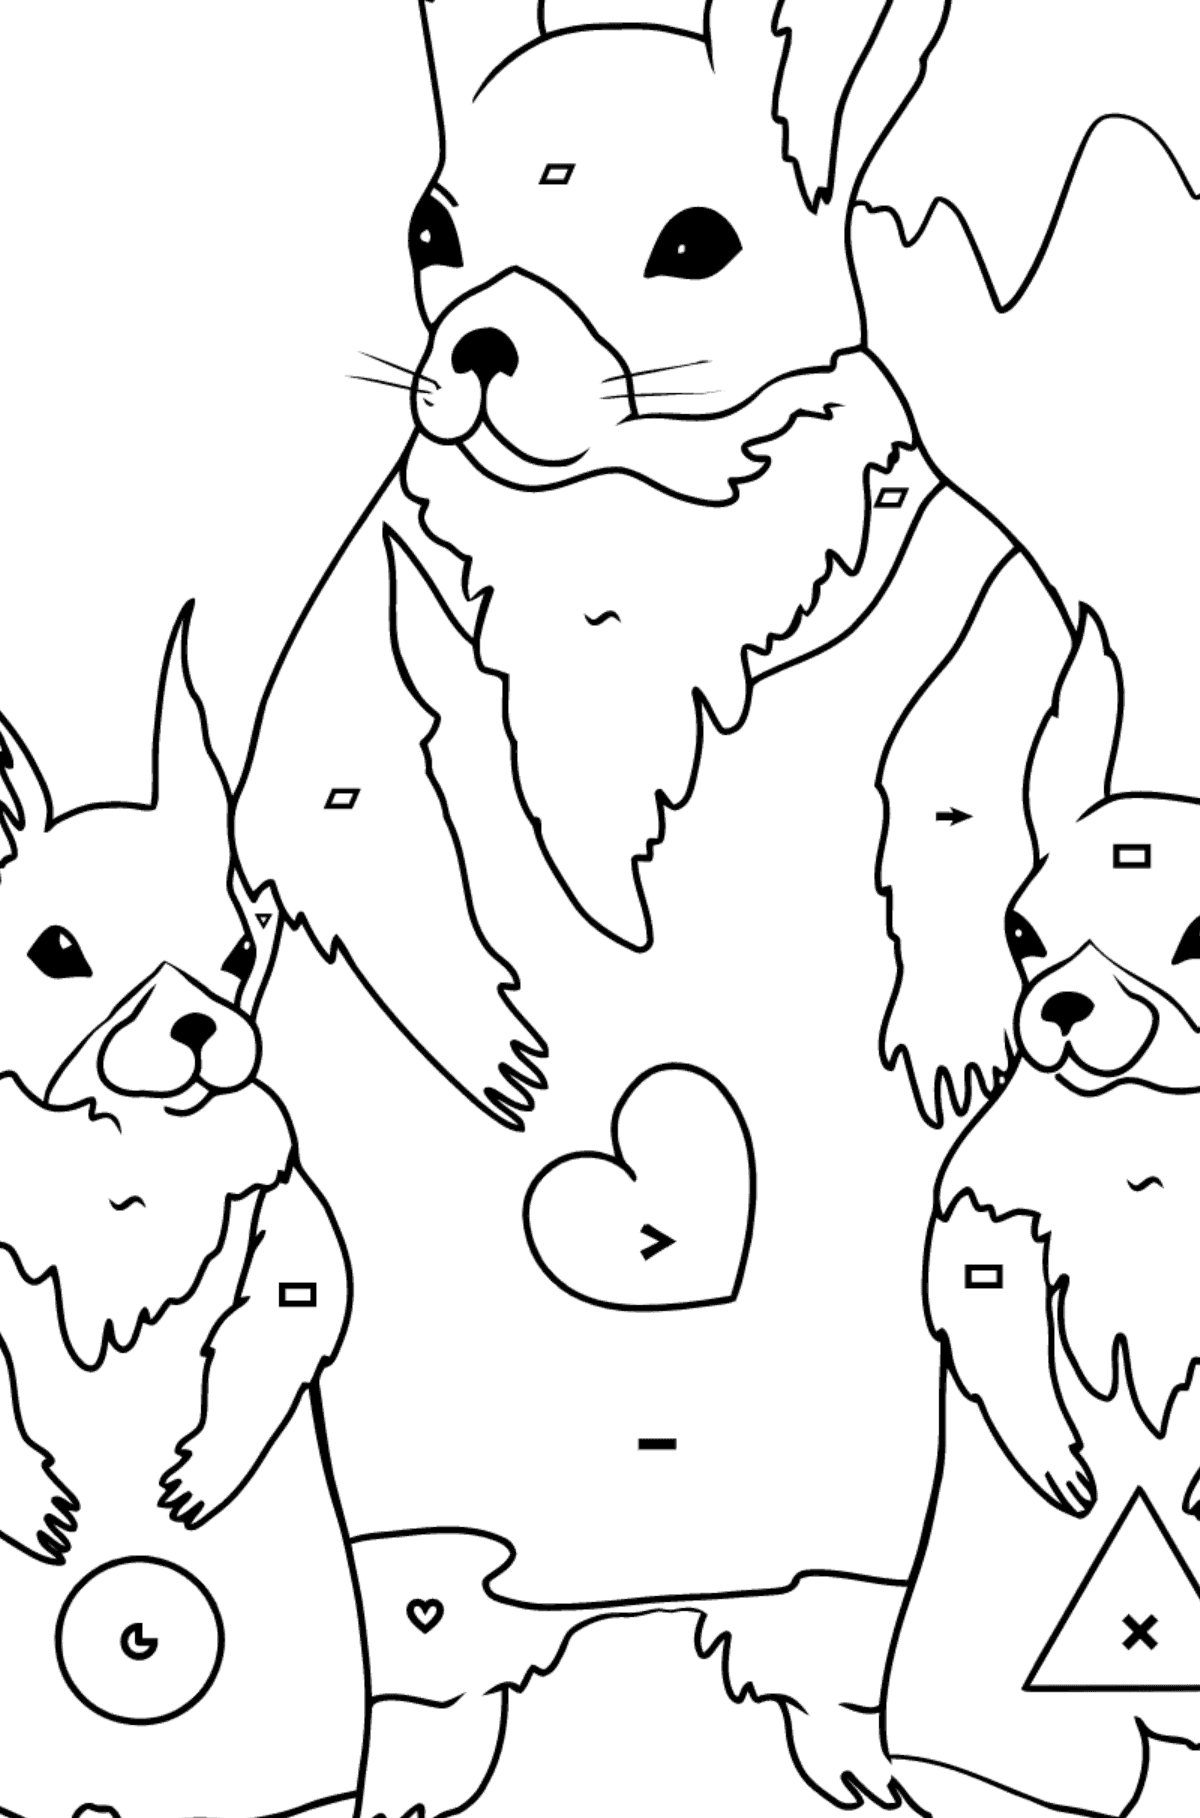 Spring Coloring Page - Beautiful Squirrels for Kids  - Color by Symbols and Geometric Shapes